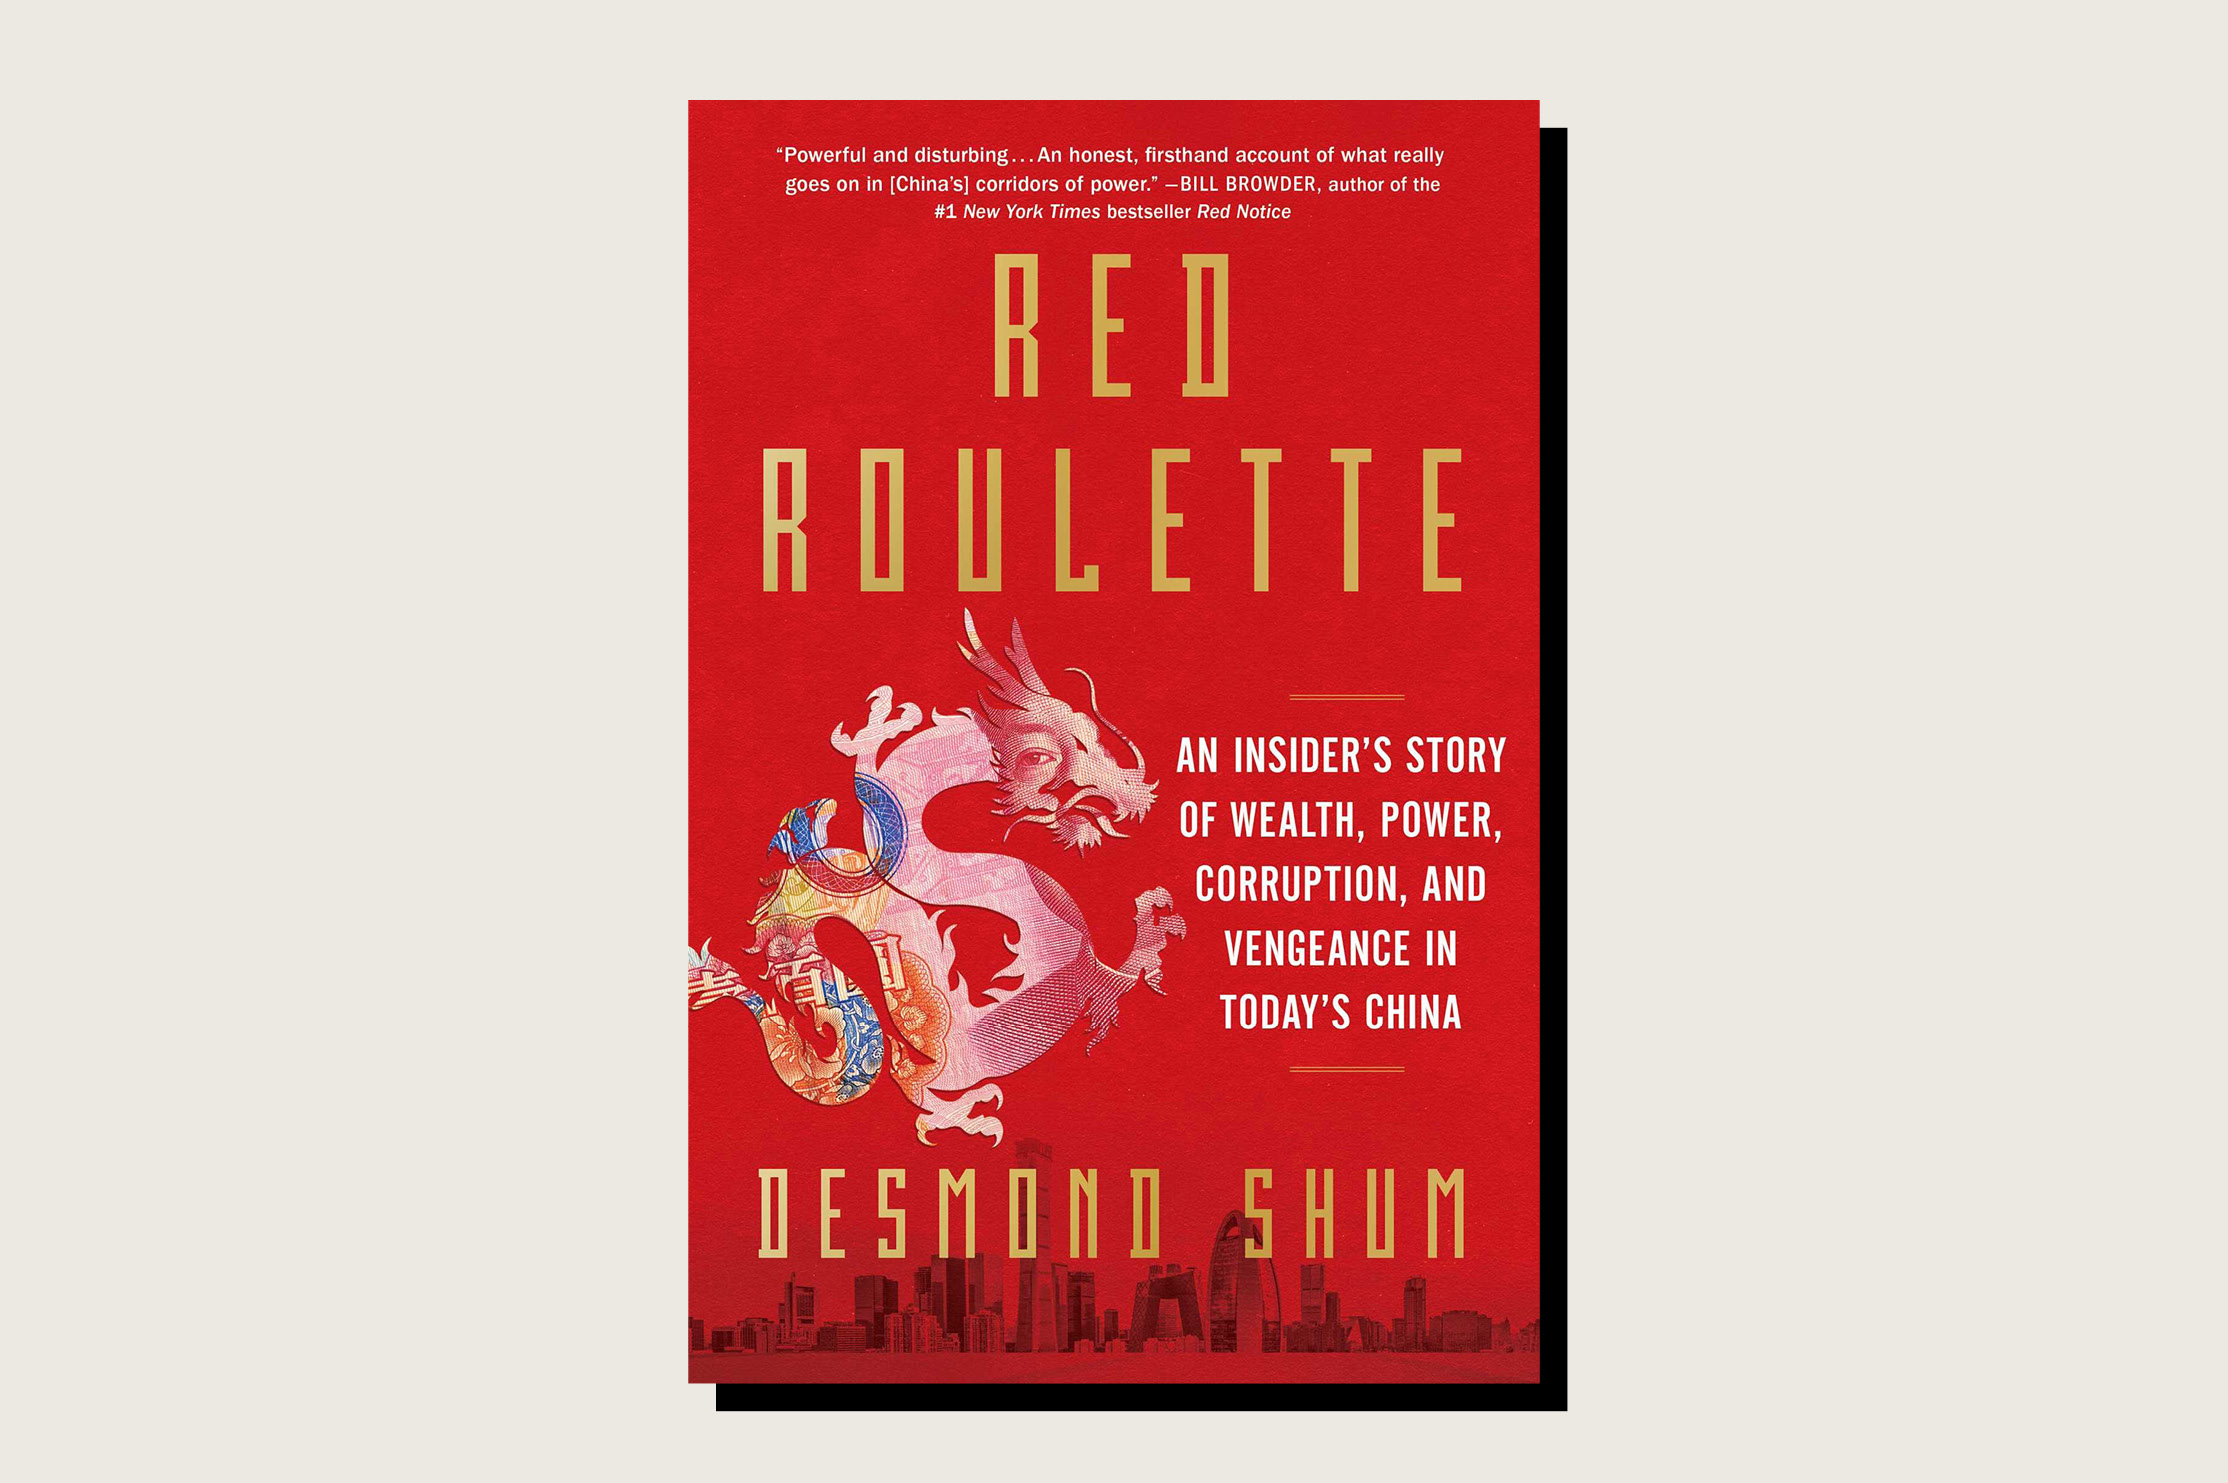 Red Roulette: An Insider's Story of Wealth, Power, Corruption, and Vengeance in Today's China, Desmond Shum, Scribner, 320 pp., , September 2021